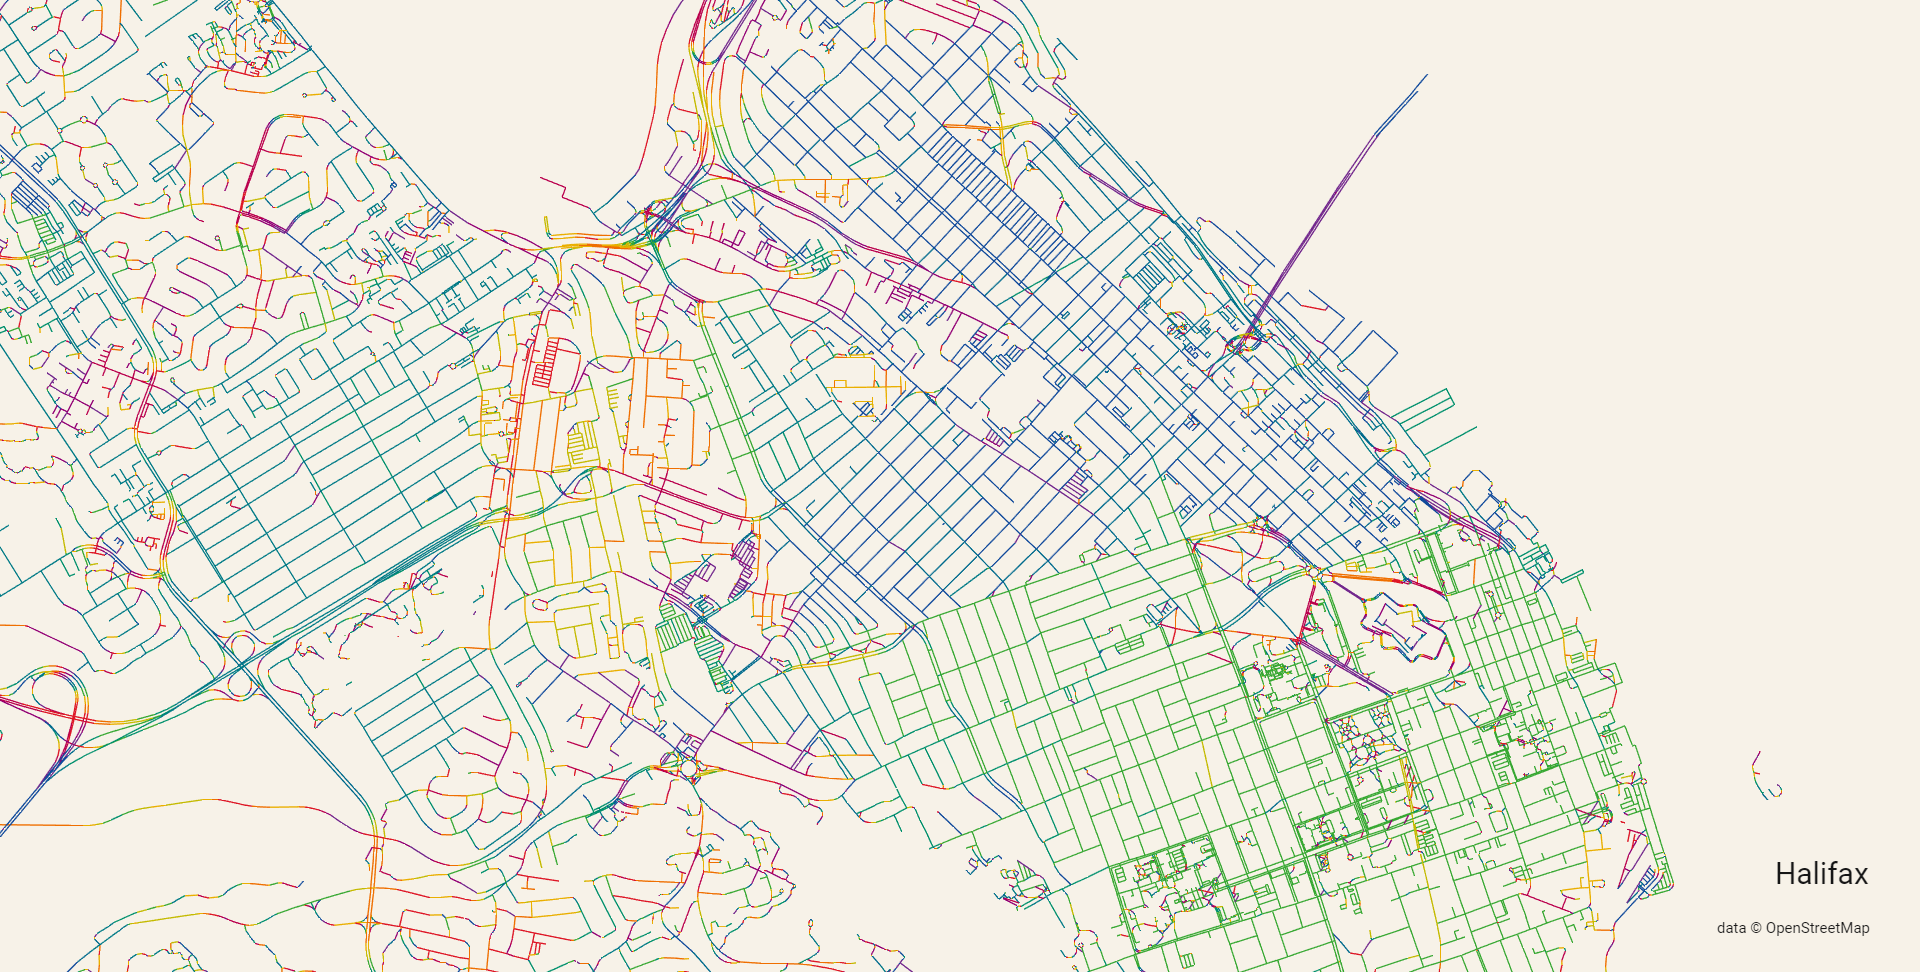 Map of Halifax with streets in different colours